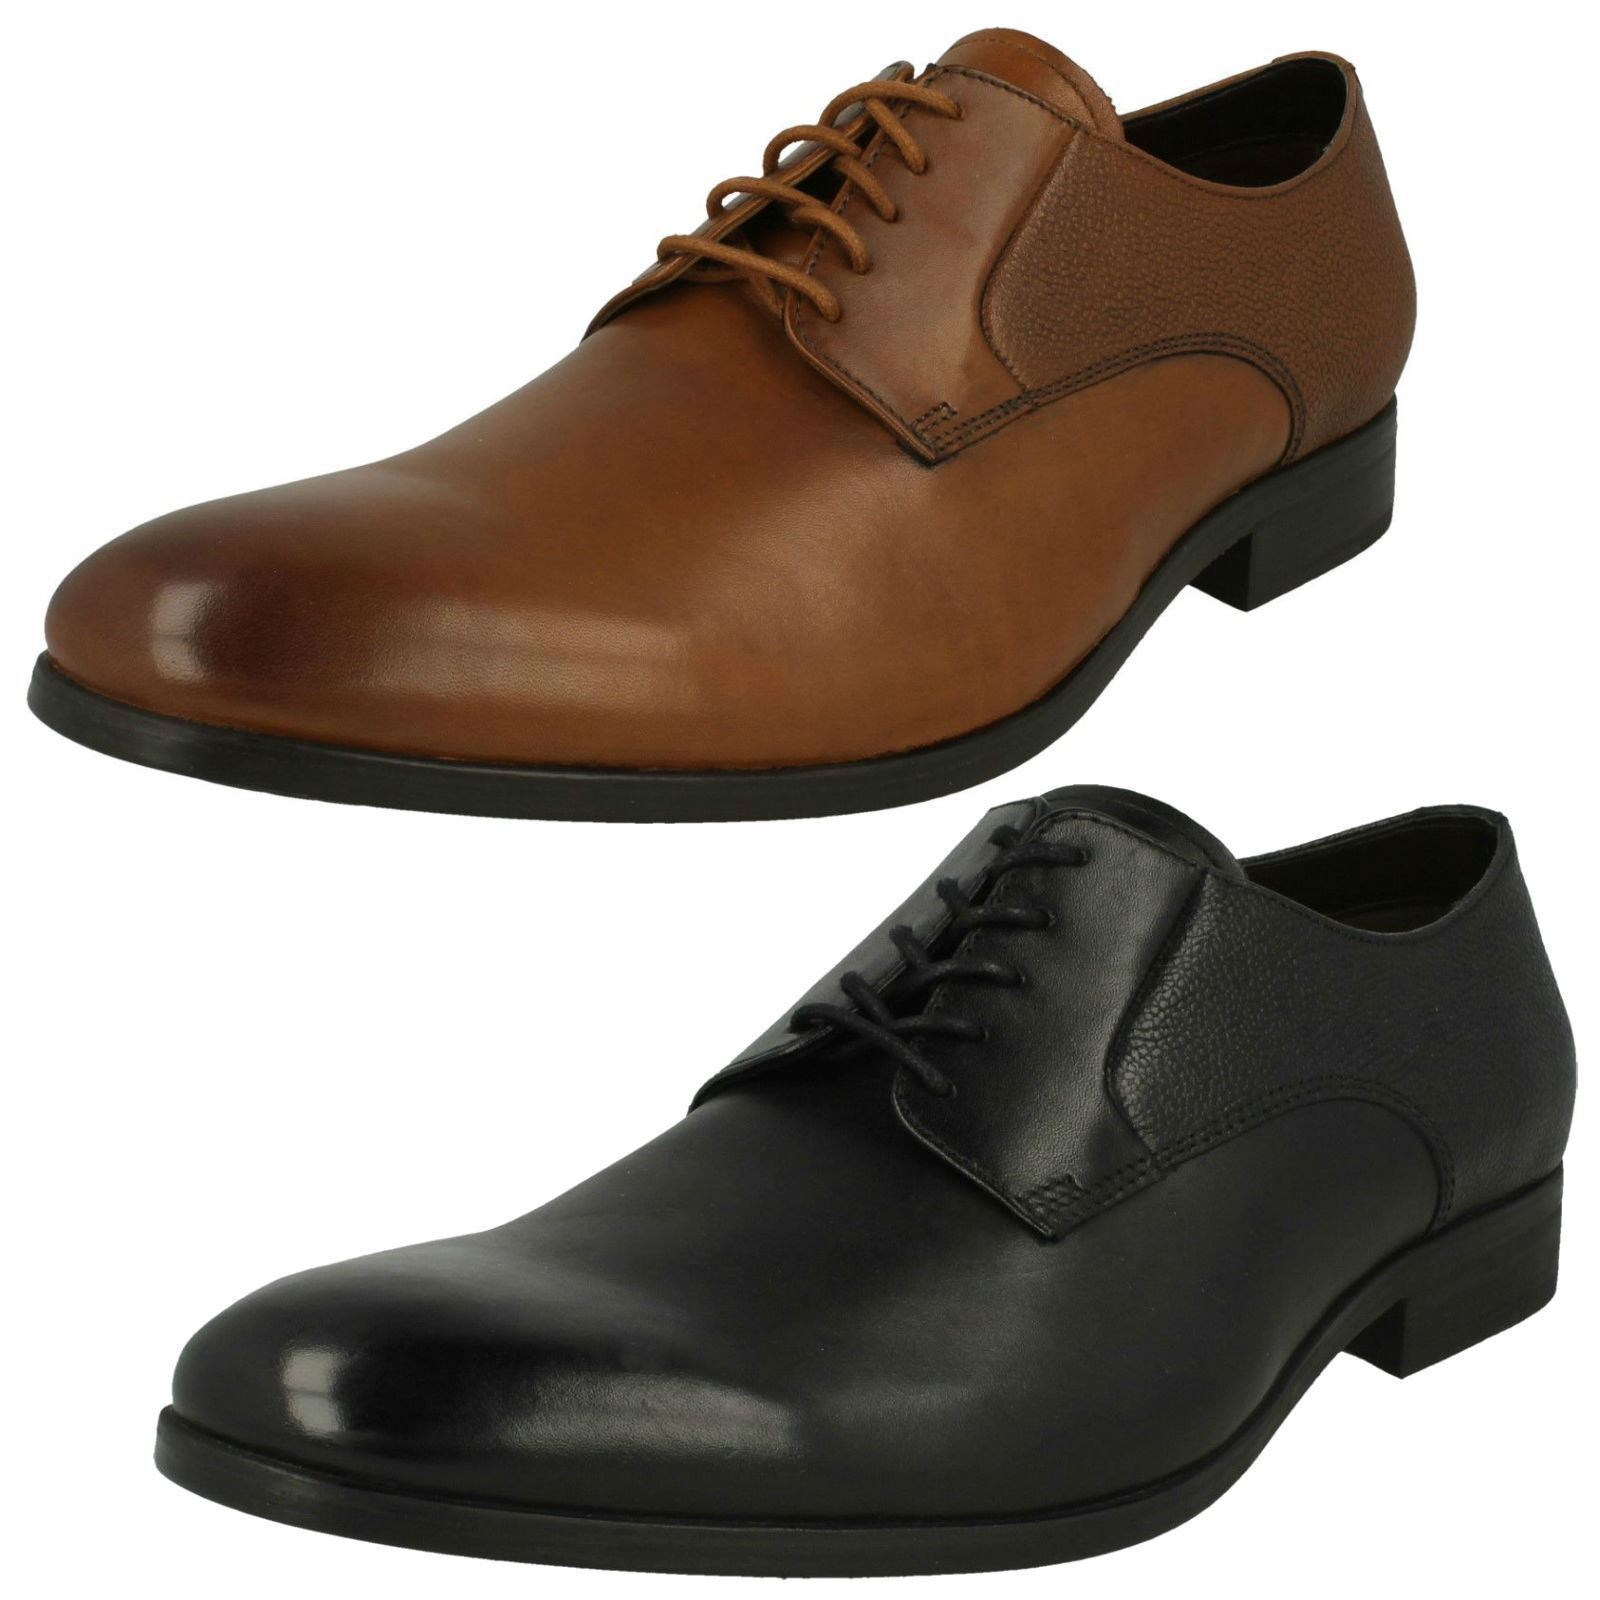 Mens Clarks Formal Lace Up shoes 'Gilmore Lace'